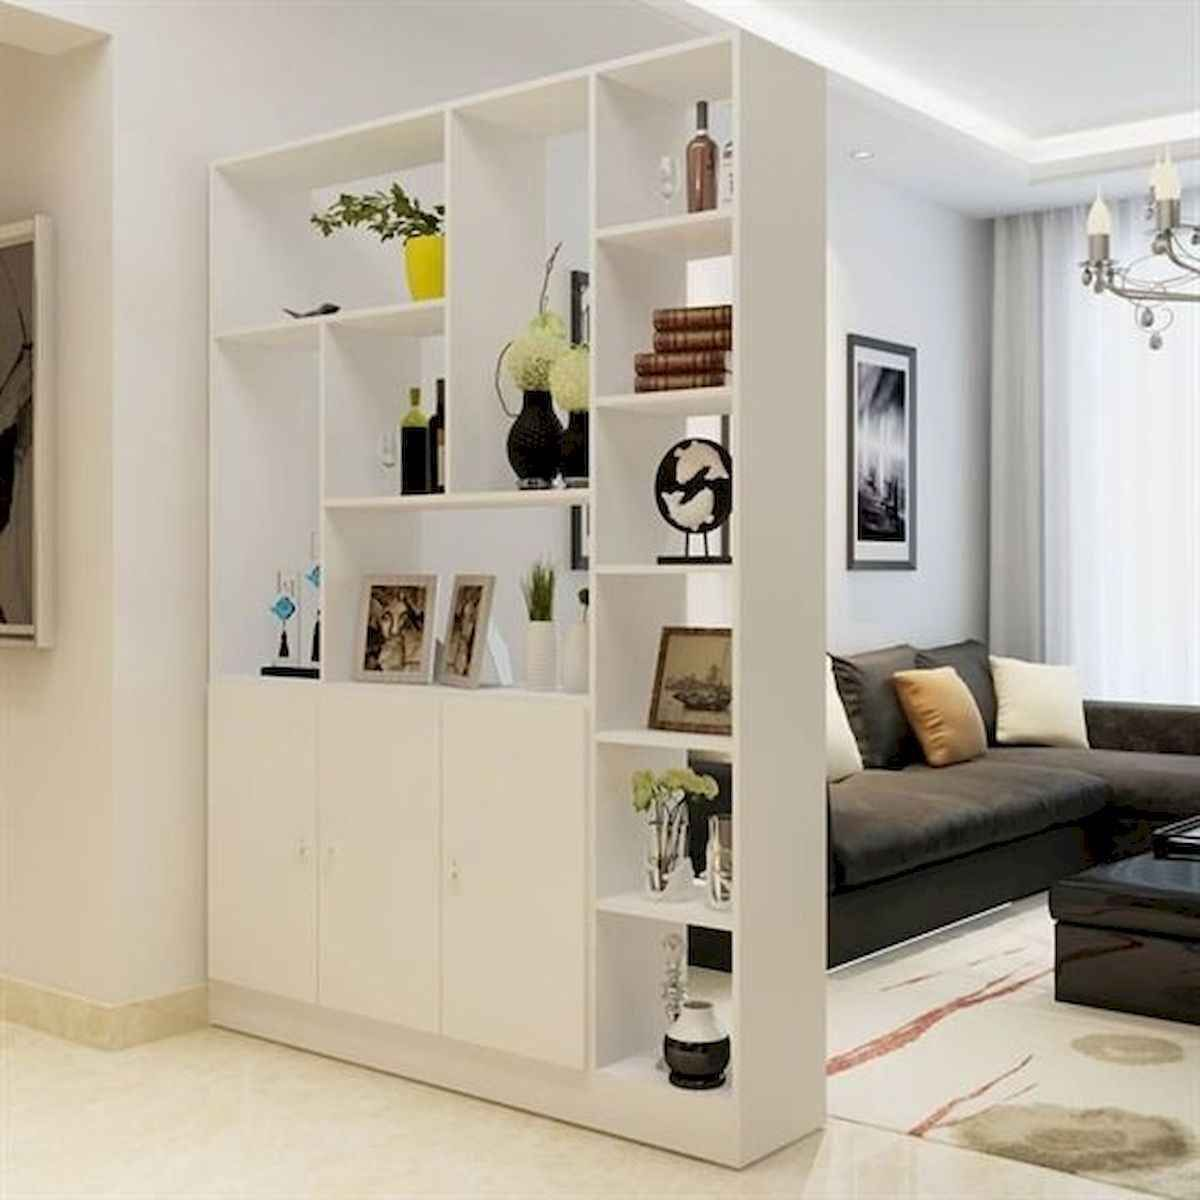 60 Favorite Studio Apartment Storage Decor Ideas And Remodel 7 In 2020 Living Room Partition Design Living Room Partition Room Partition Designs